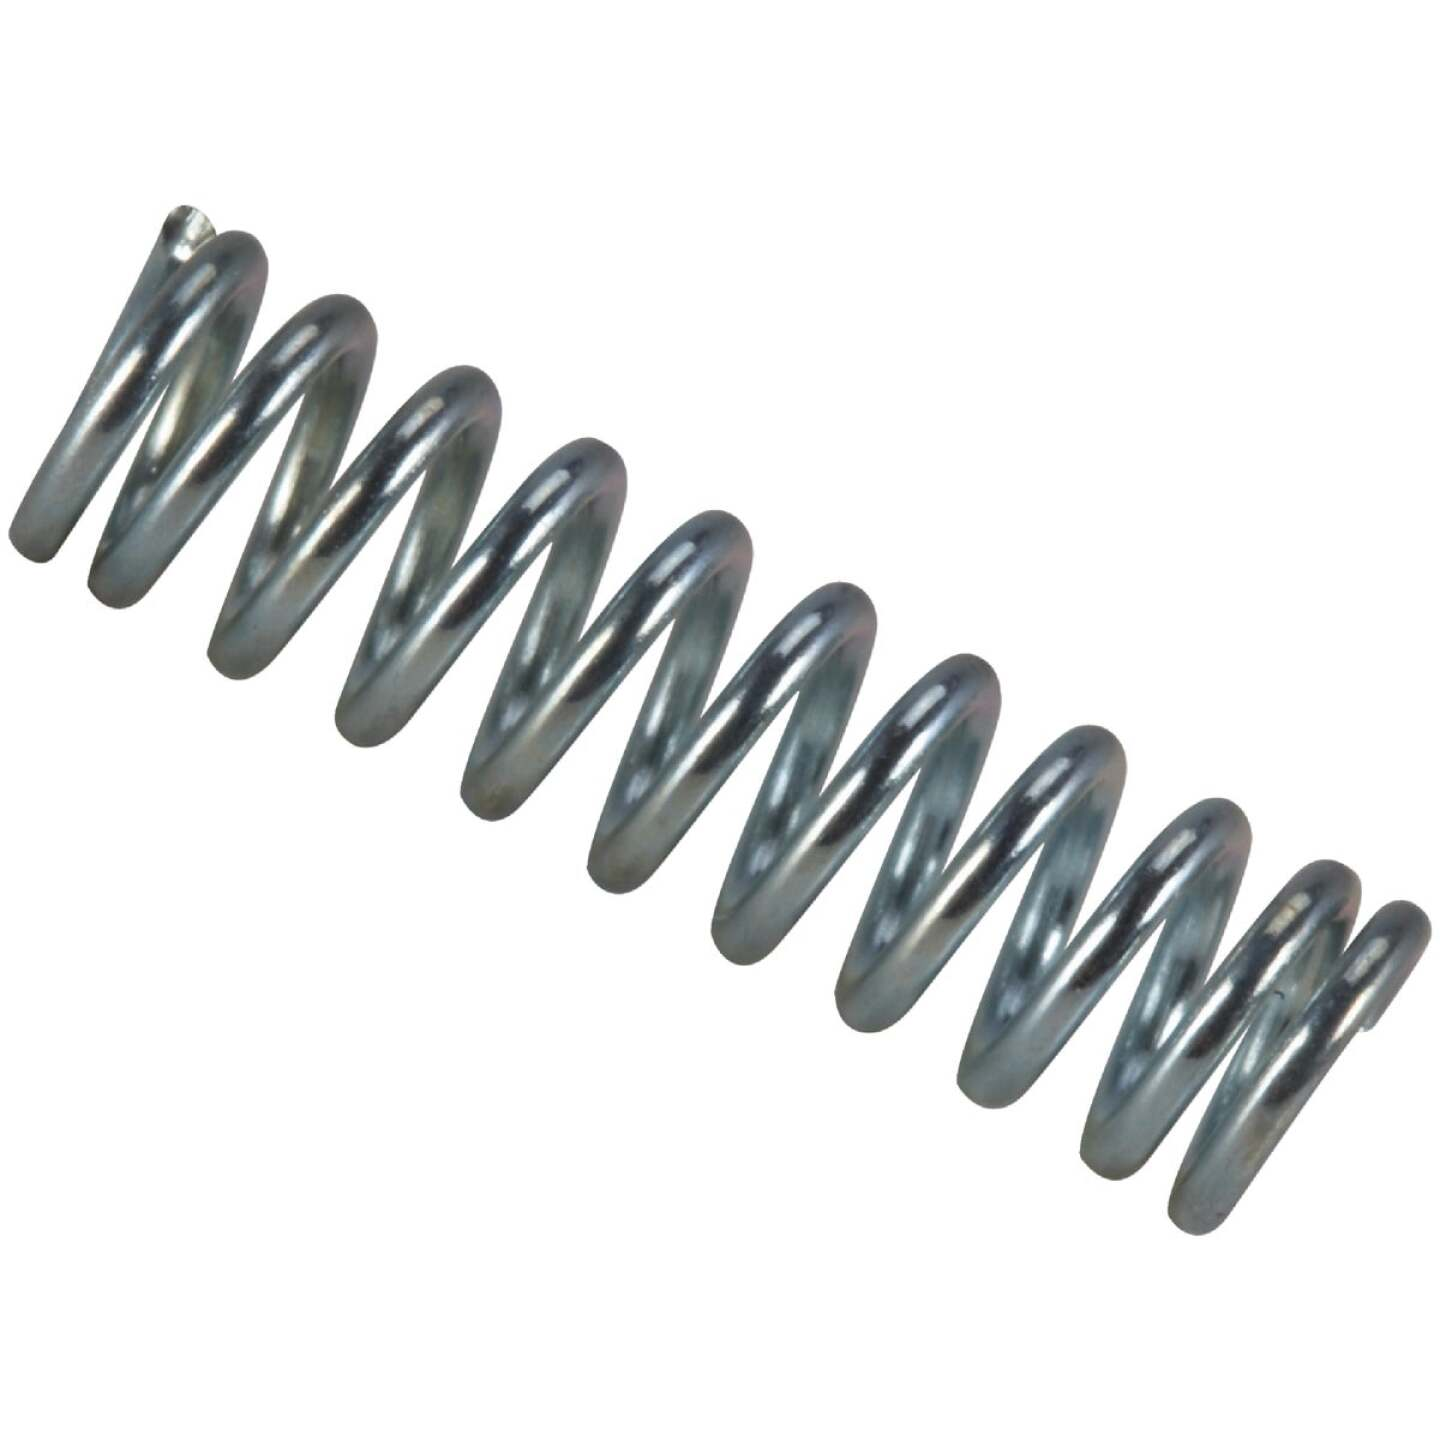 Century Spring 1-3/8 In. x 1/4 In. Compression Spring (4 Count) Image 1